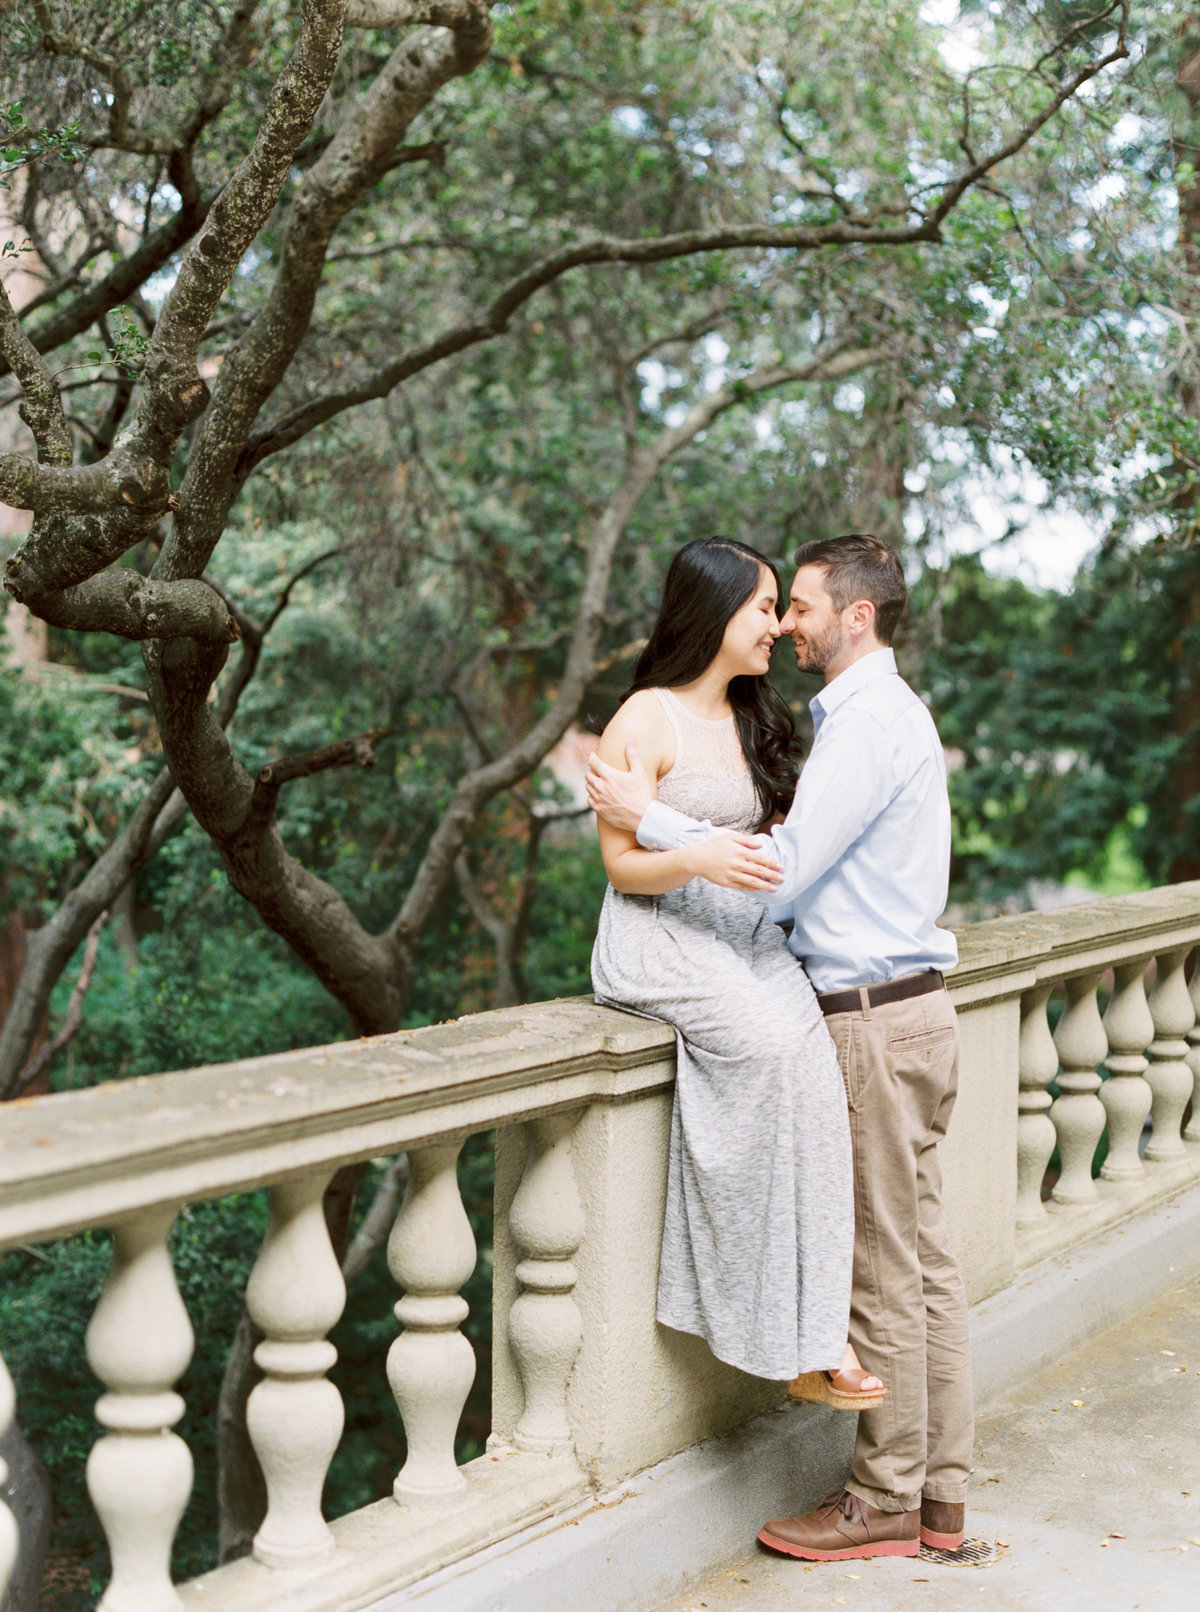 Loan + Scott University of California Berkeley Campus Engagement Session 0036